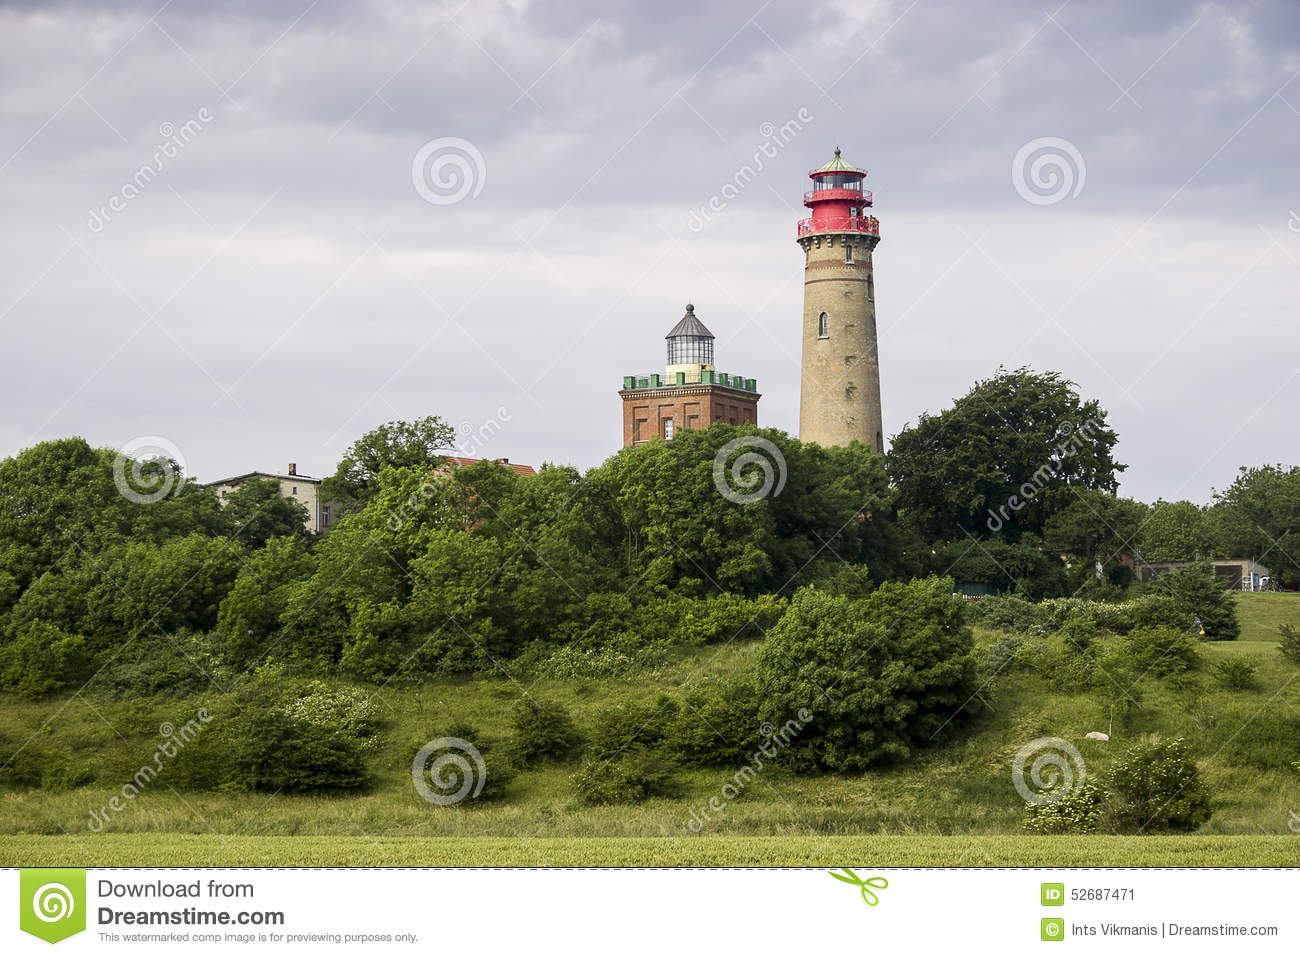 Lighthouse Of Rügen Island Royalty Free Stock Image.